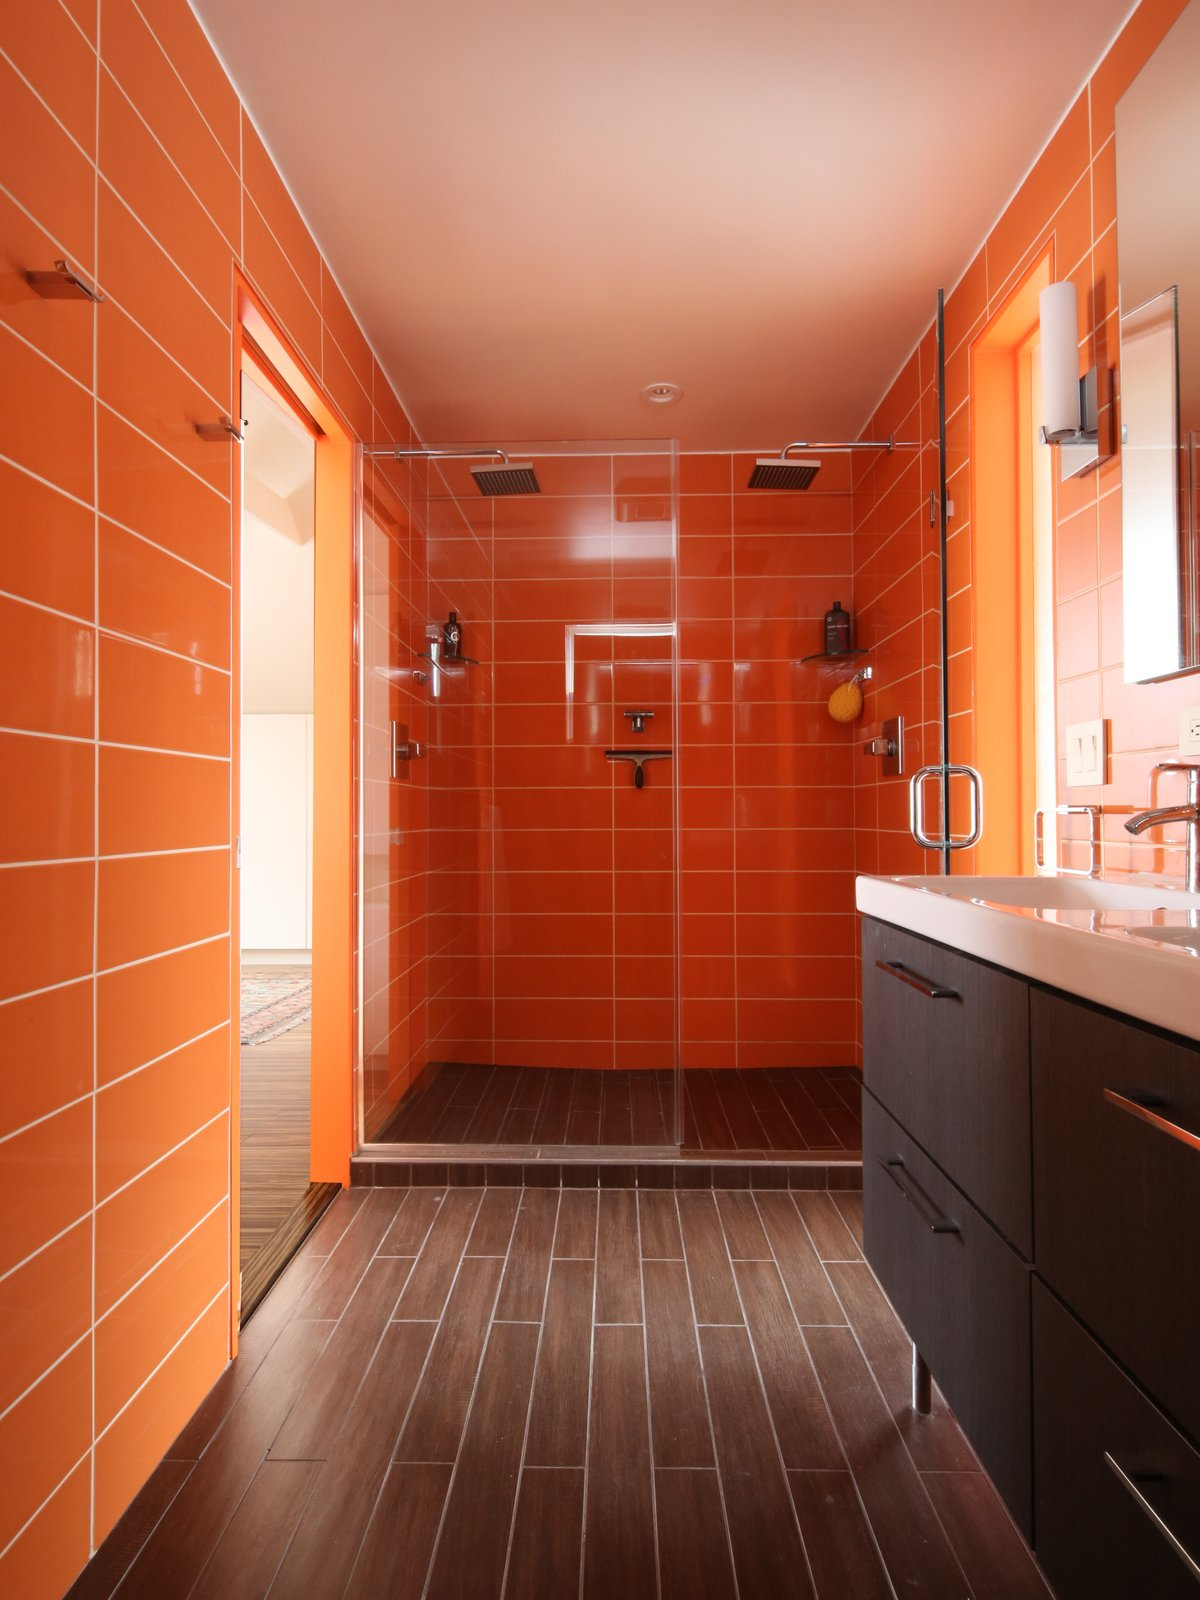 Photo 10 of 10 in a guide to ceramic versus porcelain tile dwell in the bathroom roca wall tile in rainbow azul continues the citrus color scheme dailygadgetfo Gallery